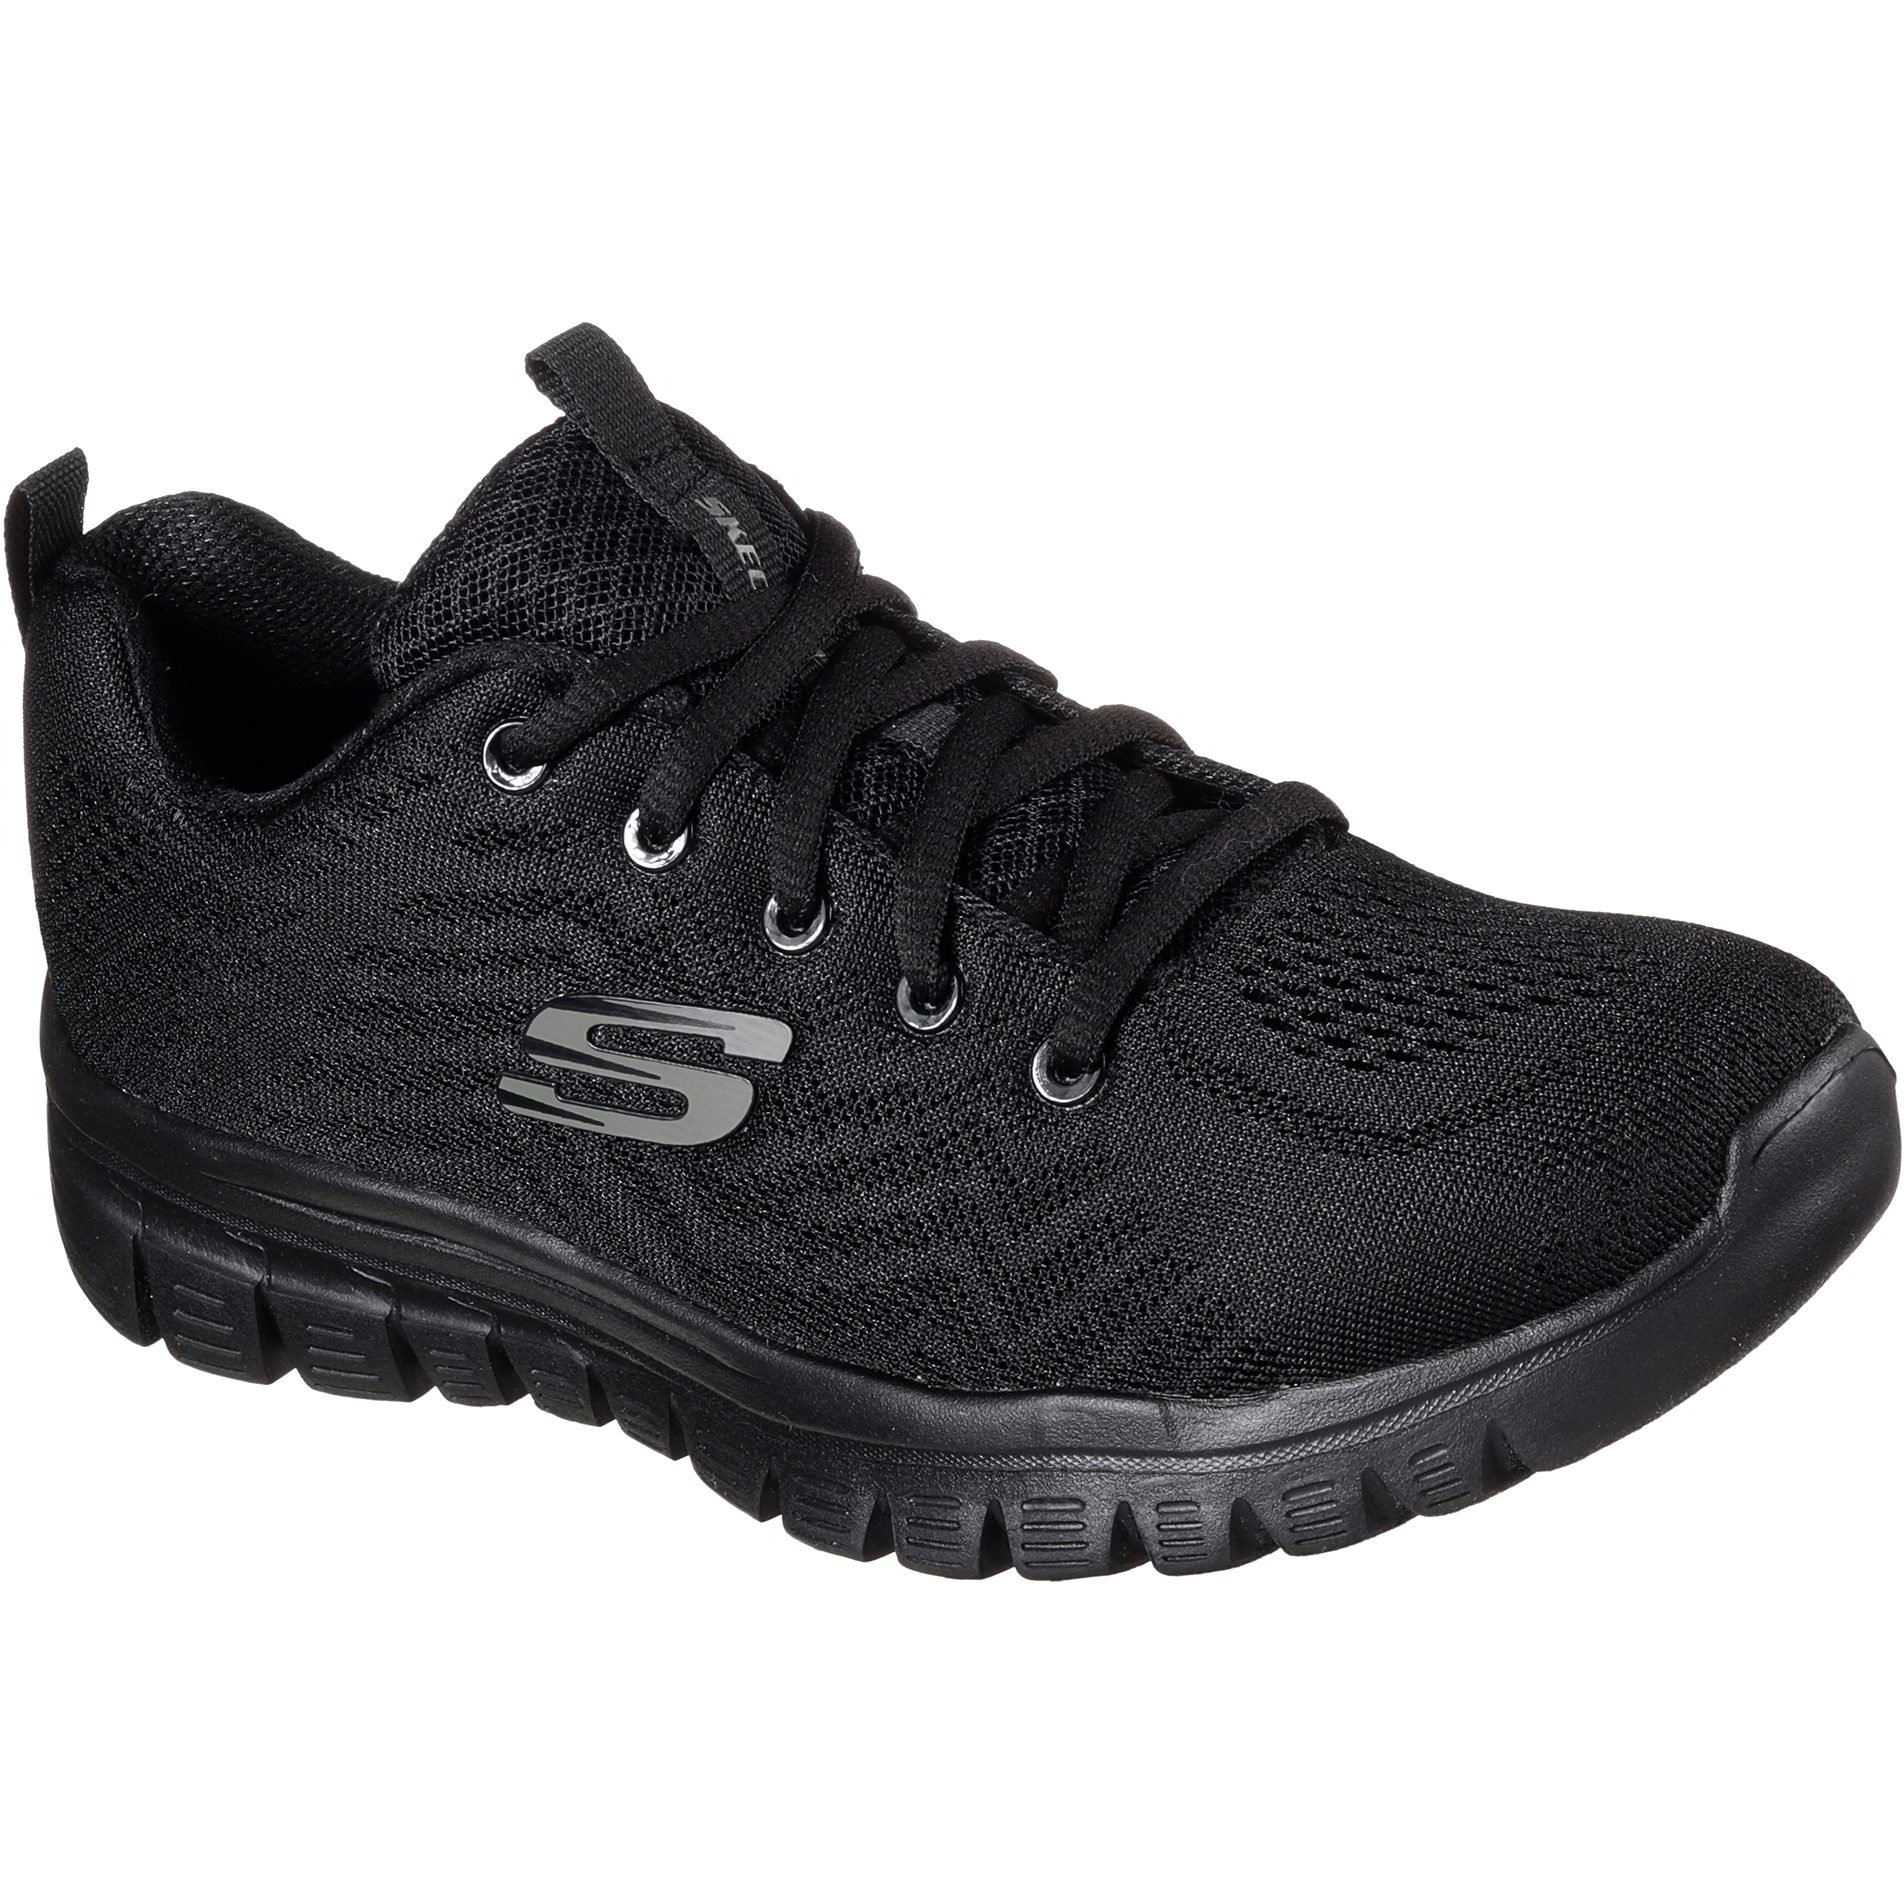 Skechers Womens Graceful Get Connected Trainers Shoes - Black Black